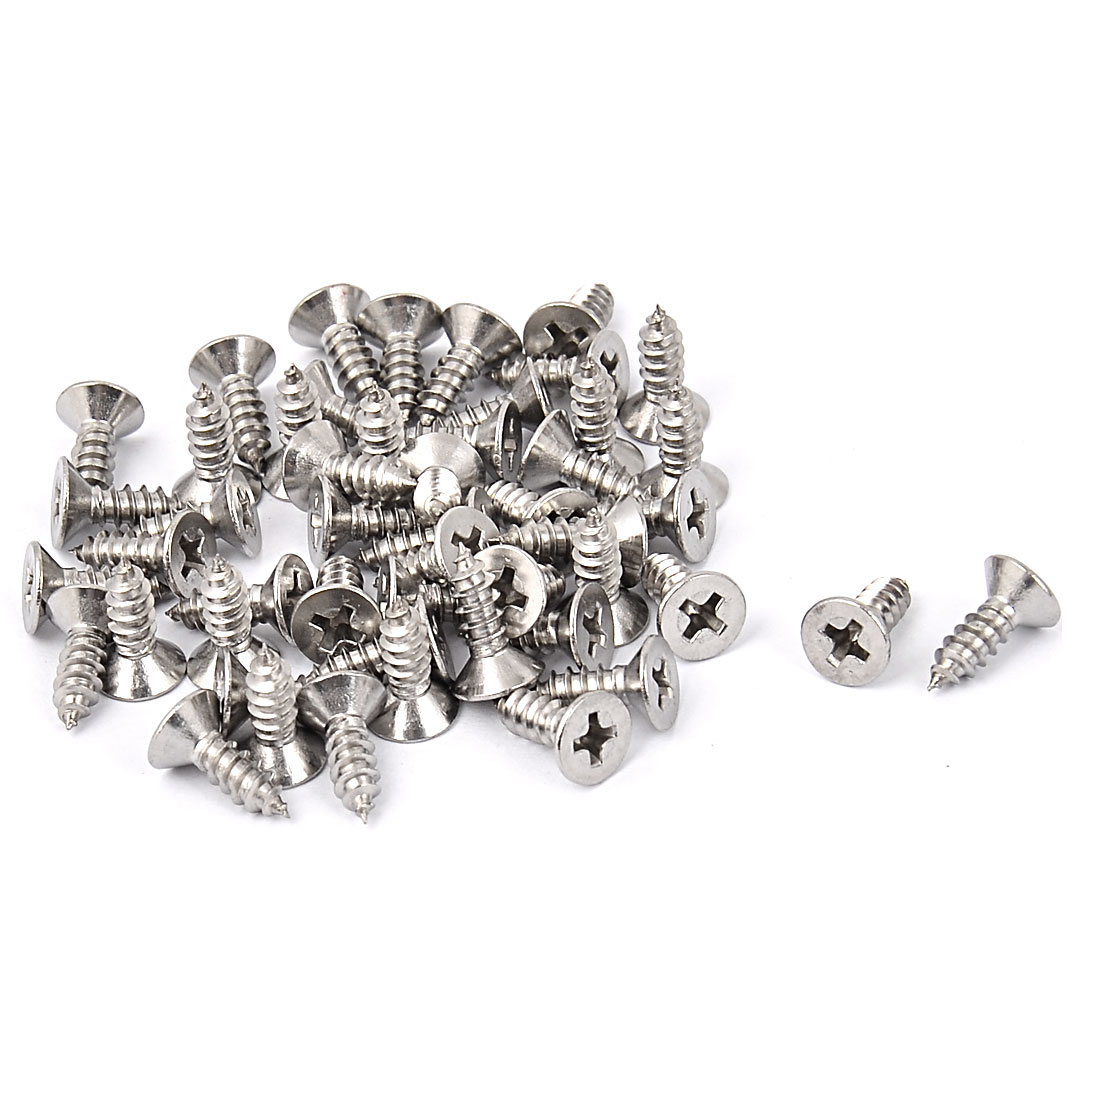 M4.2 x 13mm Countersunk Cross Head Self Tapping Screw Fasteners 50 Pcs